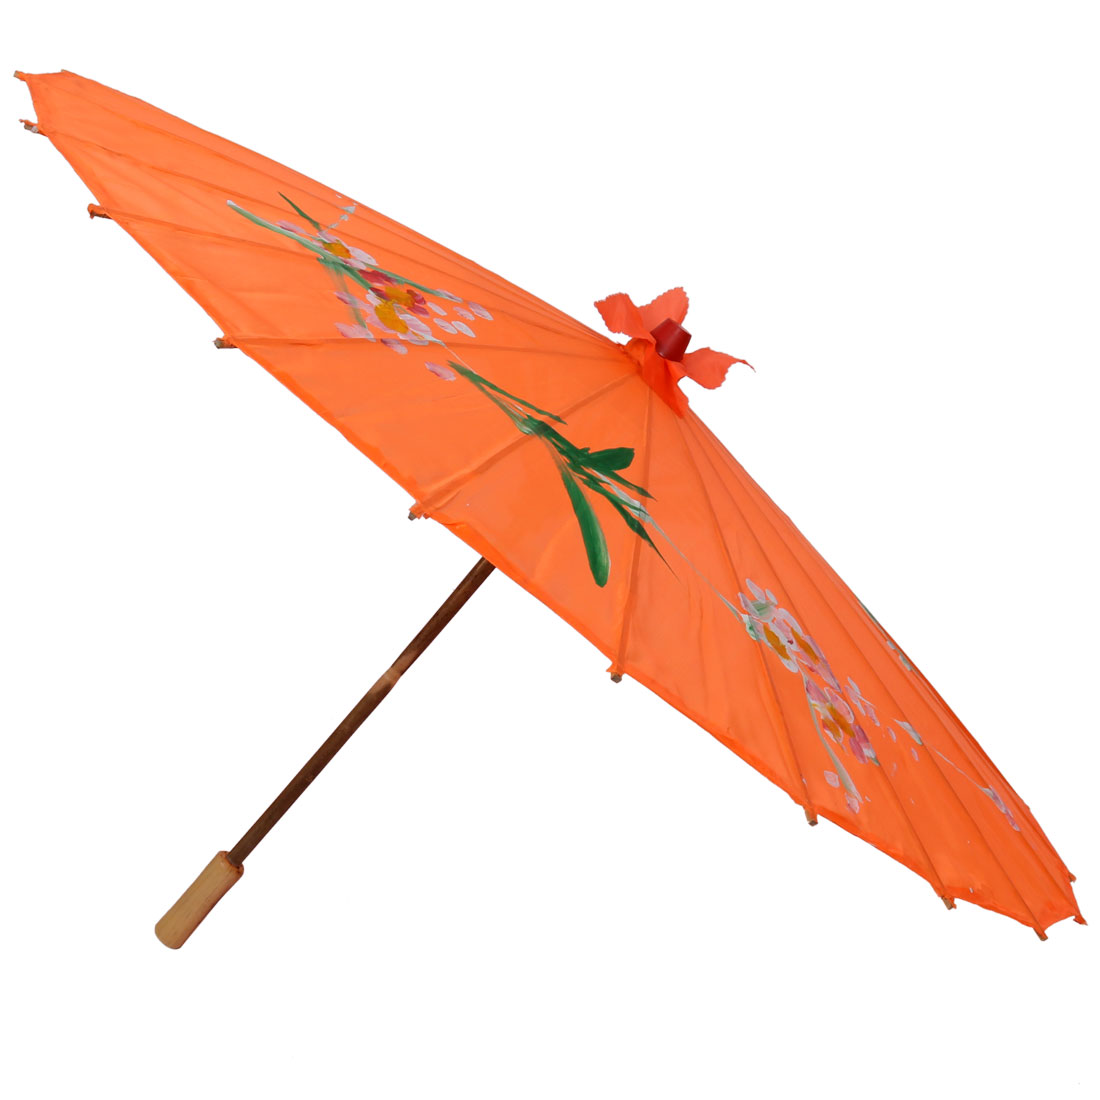 Wooden Grip Orange Nylon Fabric Flower Dancing Parasol Umbrella